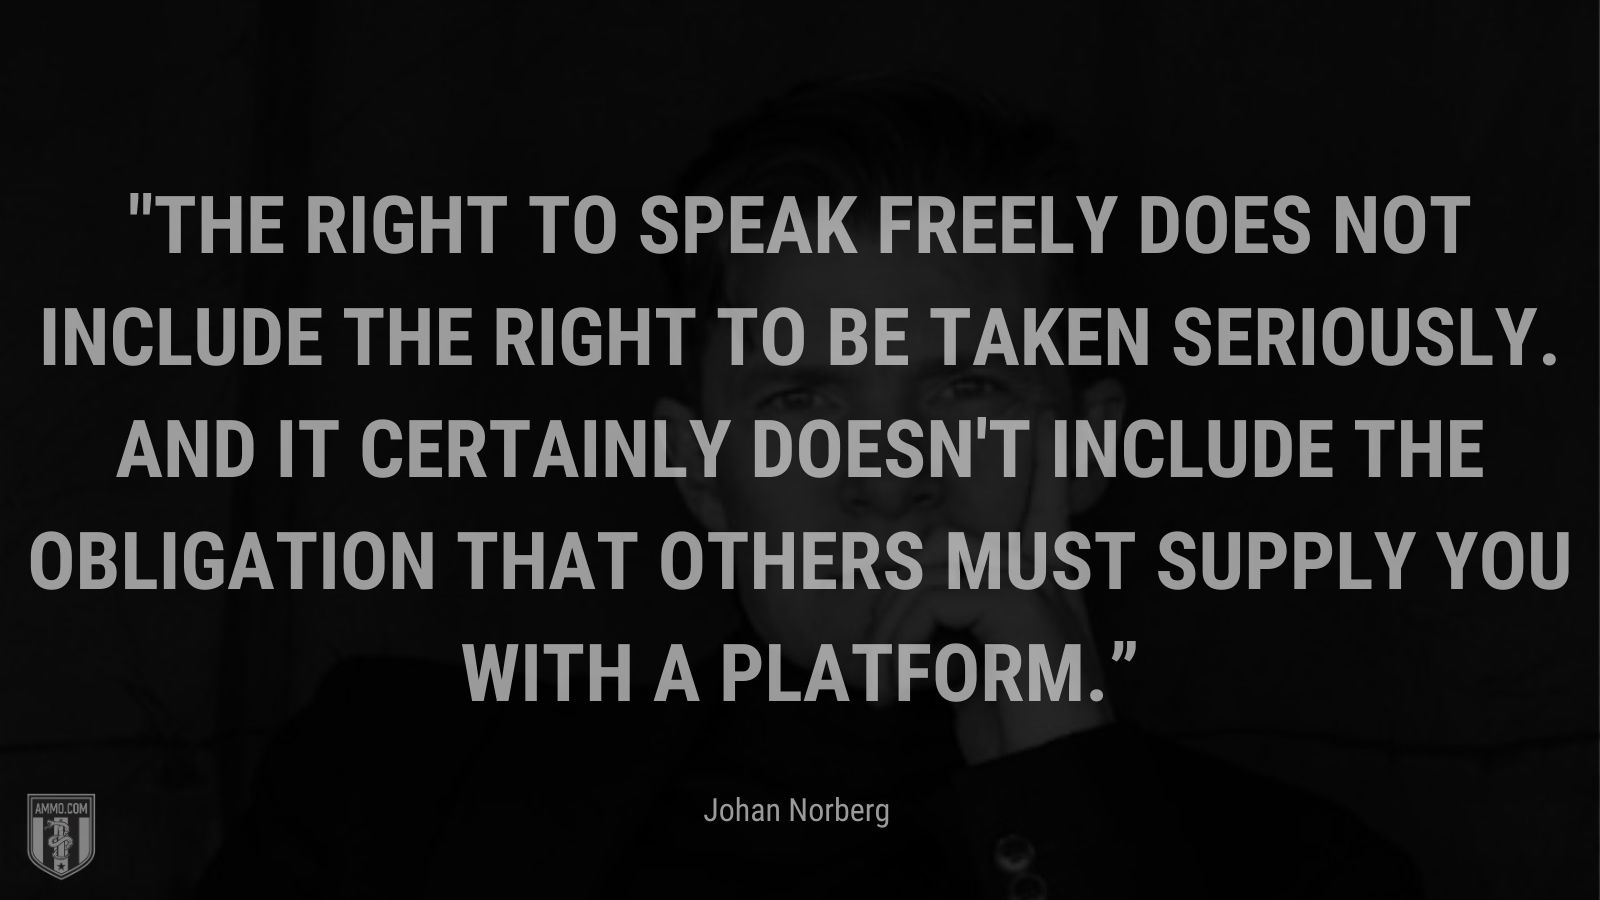 """""""The right to speak freely does not include the right to be taken seriously. And it certainly doesn't include the obligation that others must supply you with a platform."""" - Johan Norberg"""